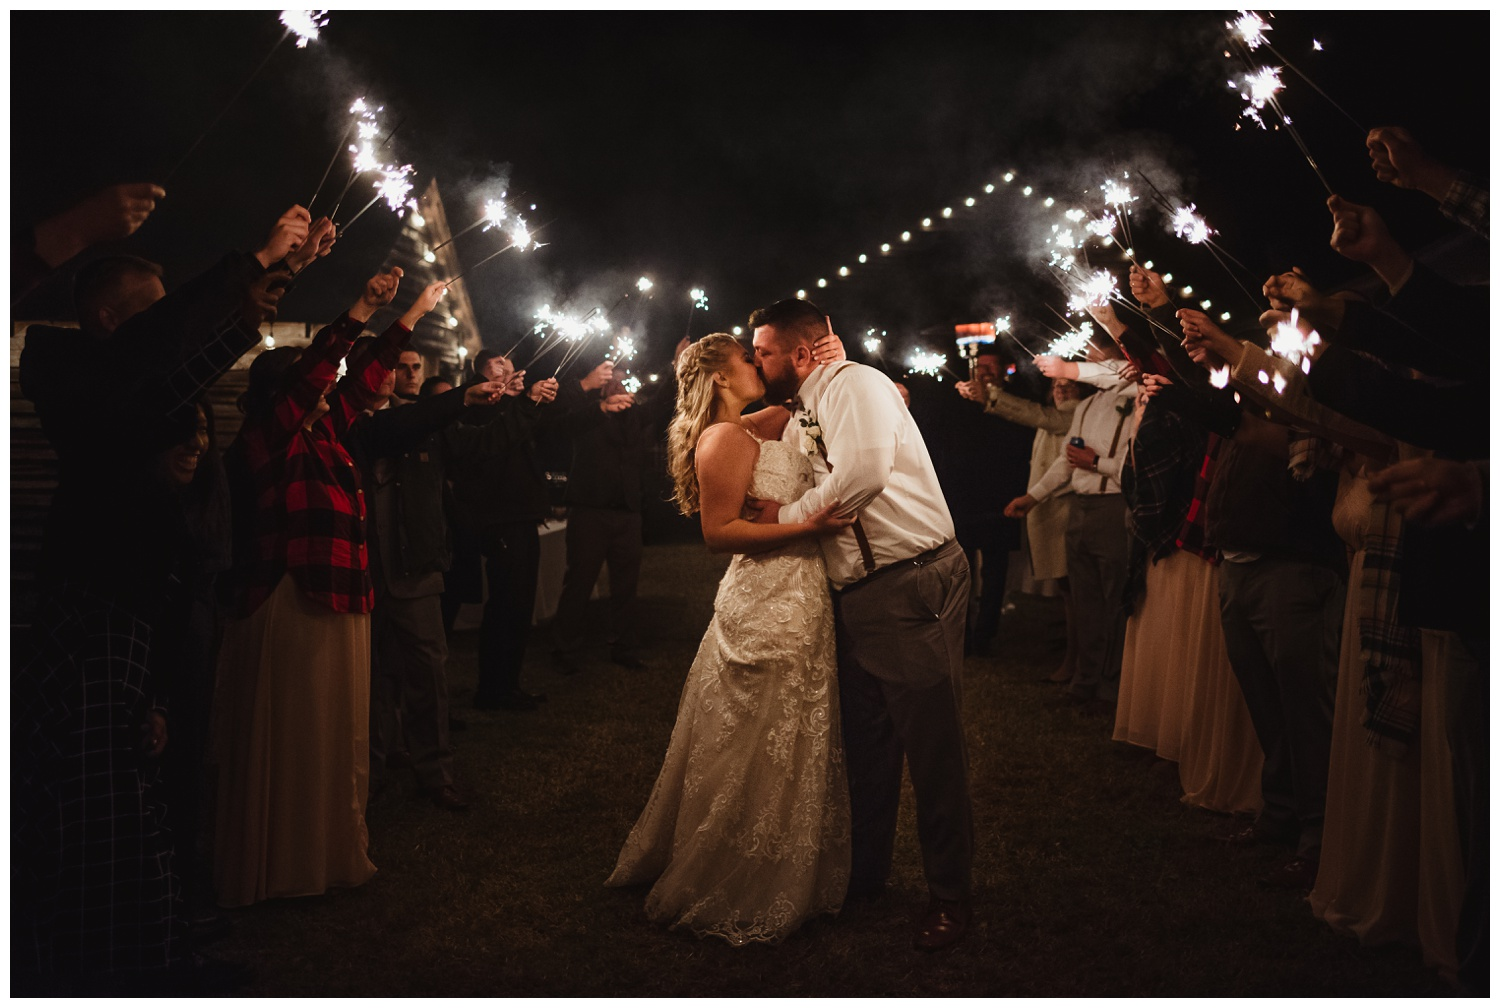 After the wedding reception at The Warren Estate, the bride and groom kissed during their sparkler exit, images by Rose Trail Images of Rolesville, NC.